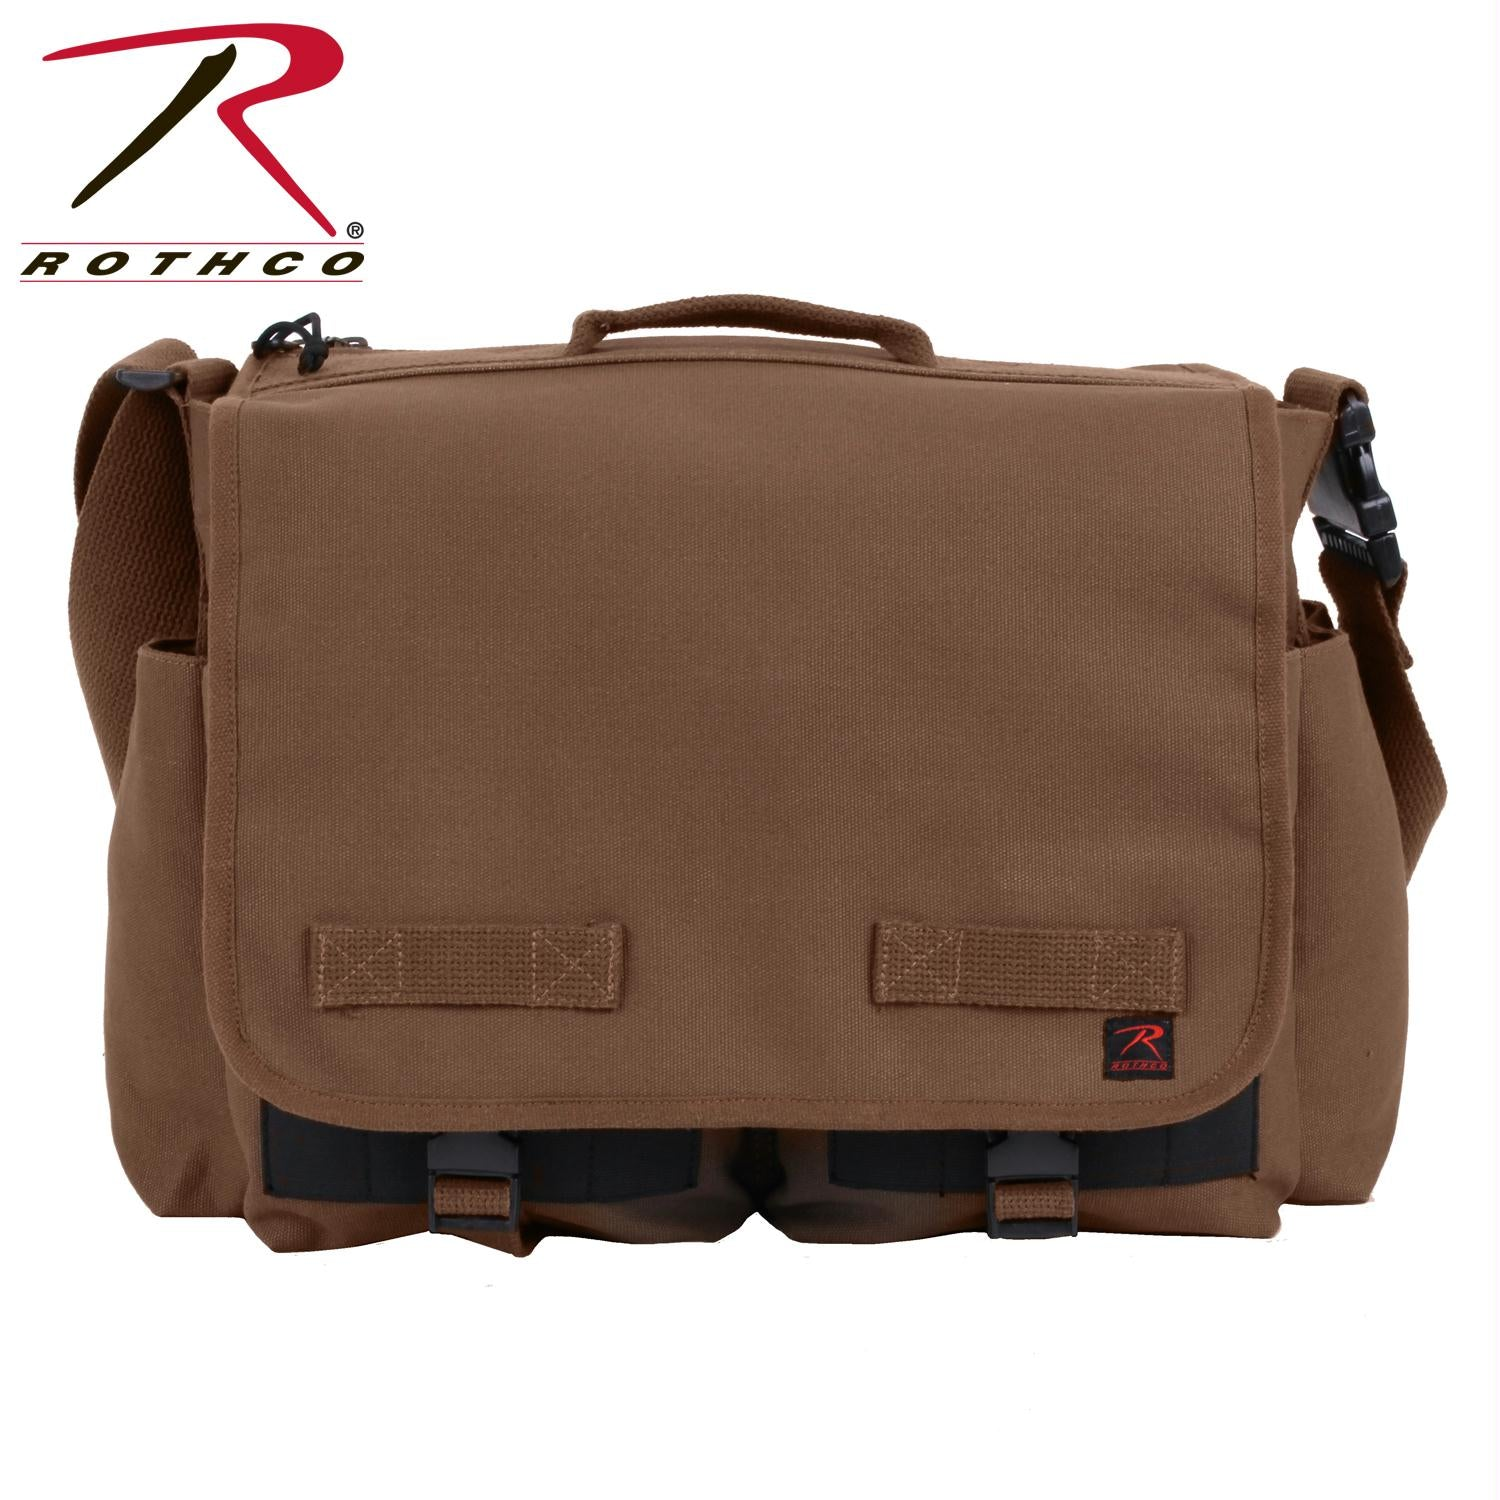 Rothco Concealed Carry Messenger Bag - Earth Brown